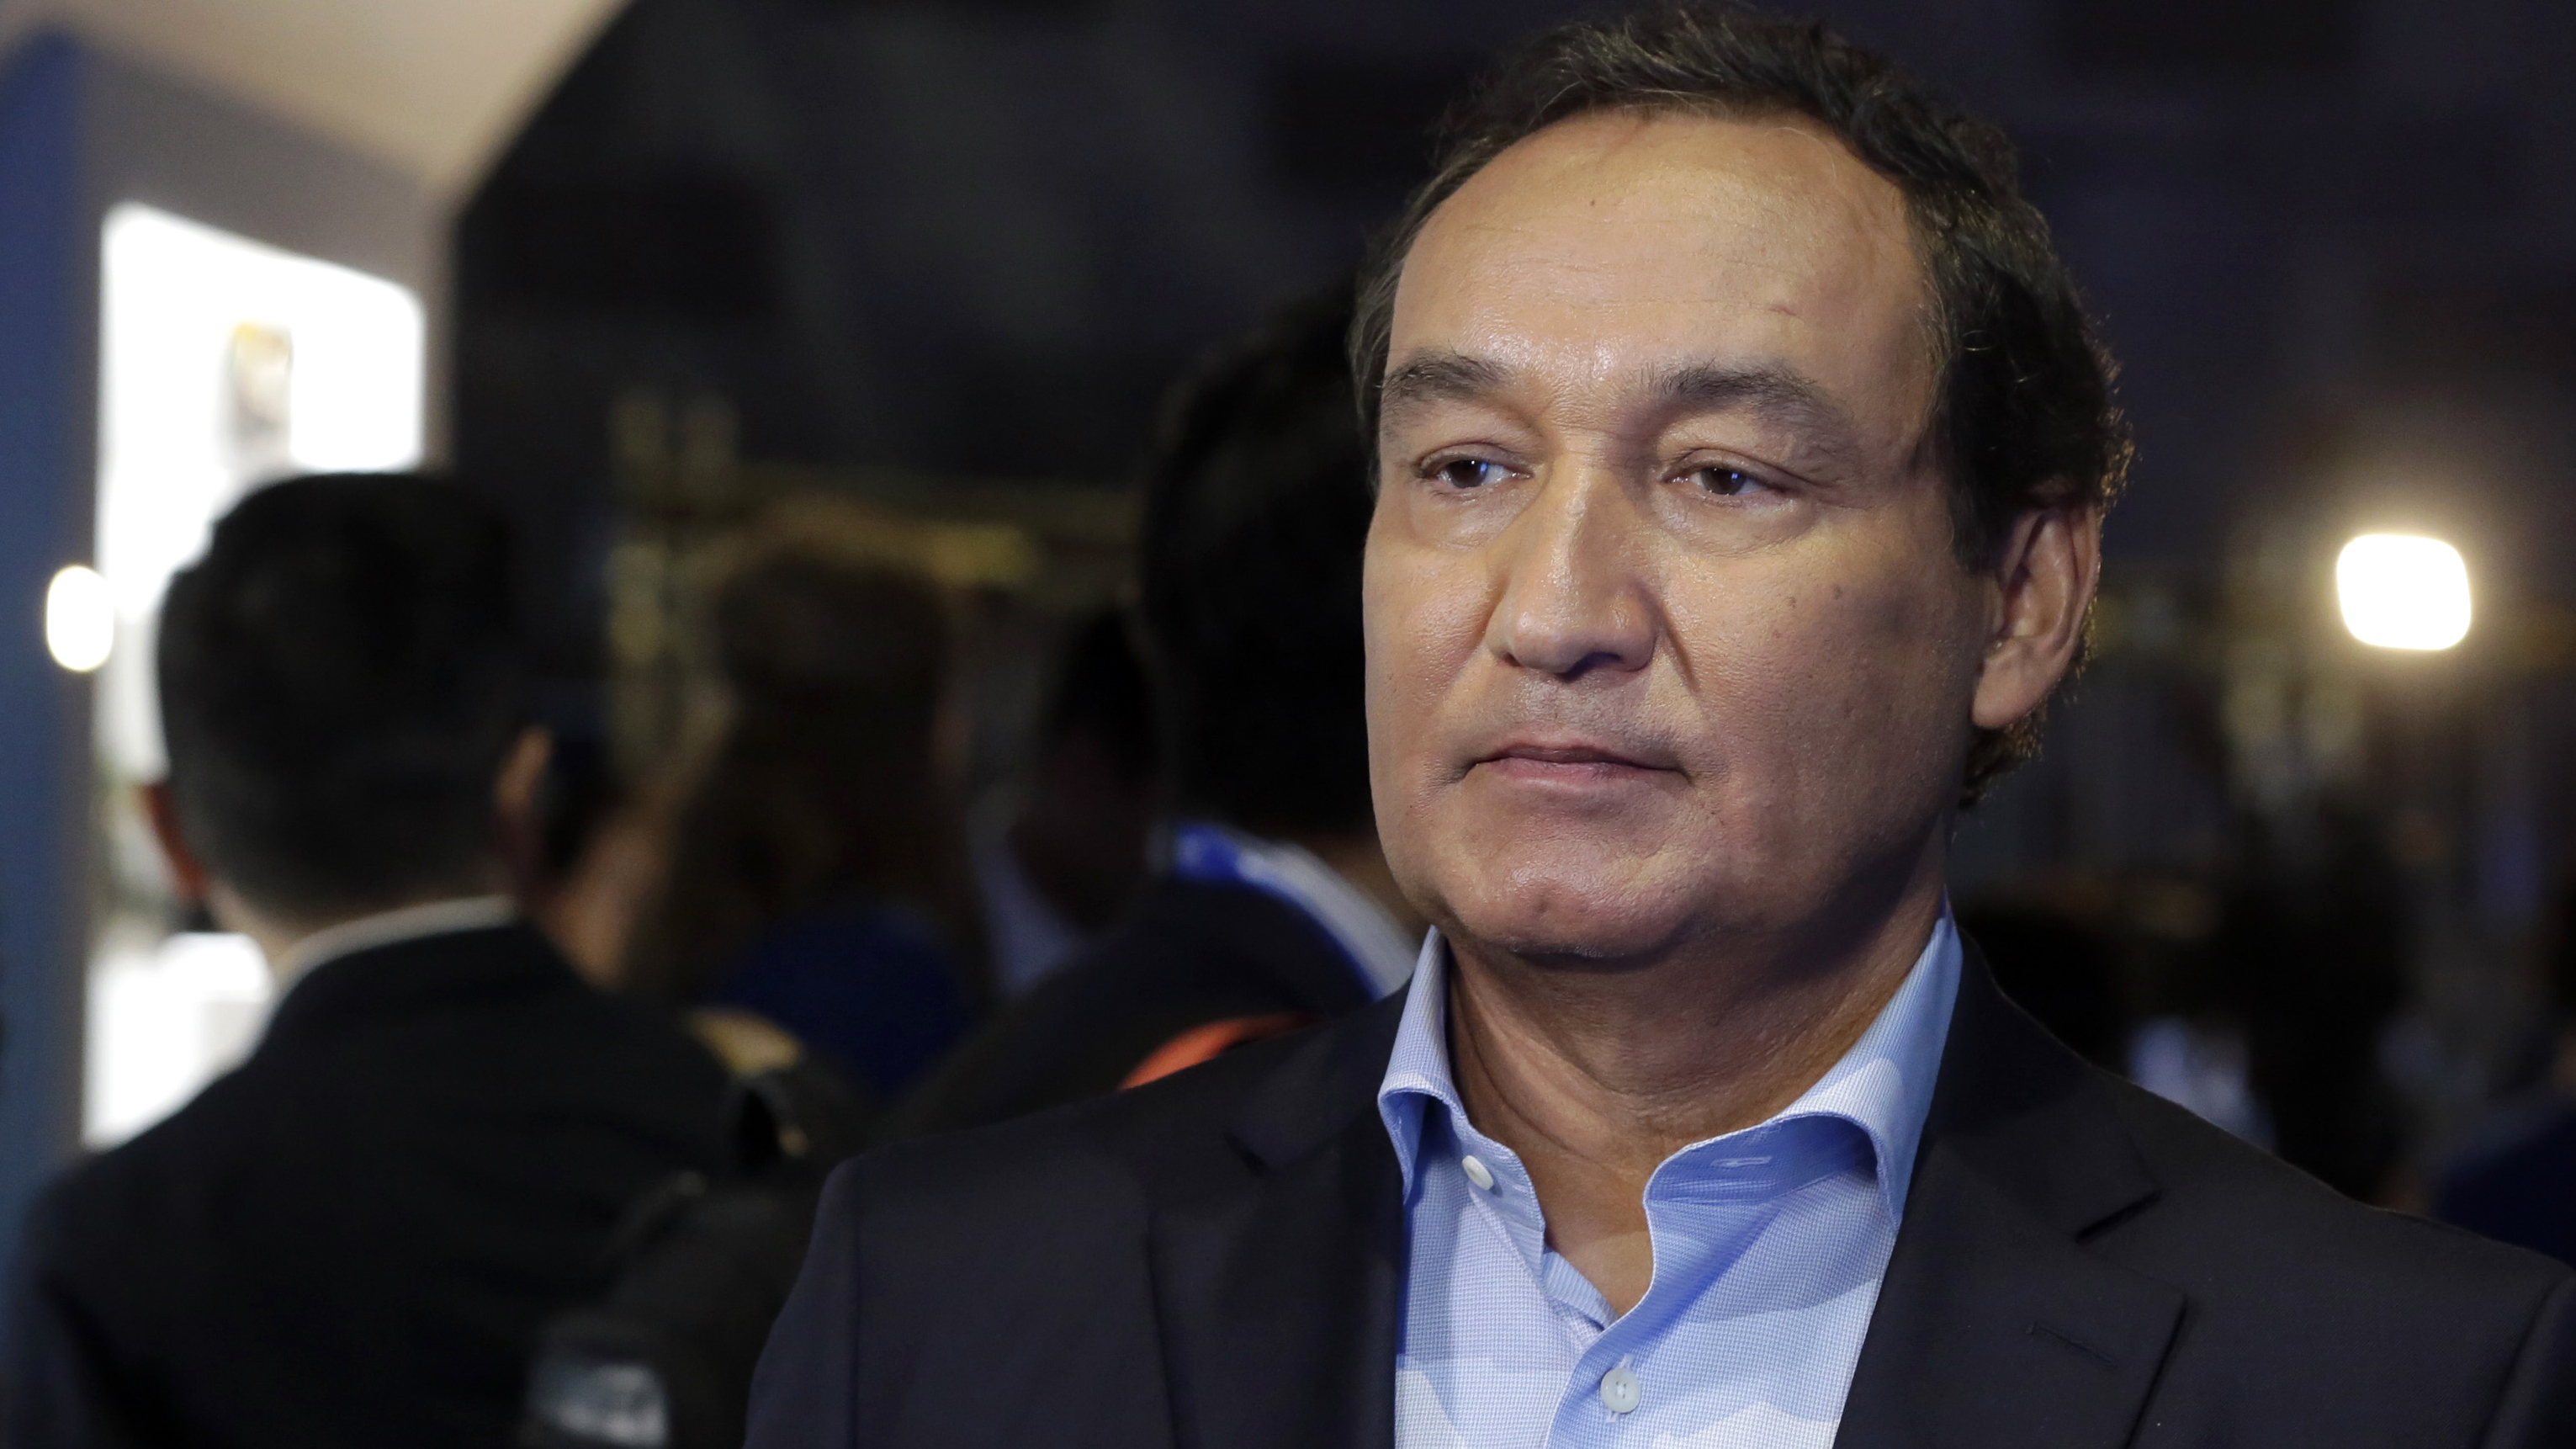 United Airlines CEO Oscar Munoz in June 2016. He will appear before a House committee today.